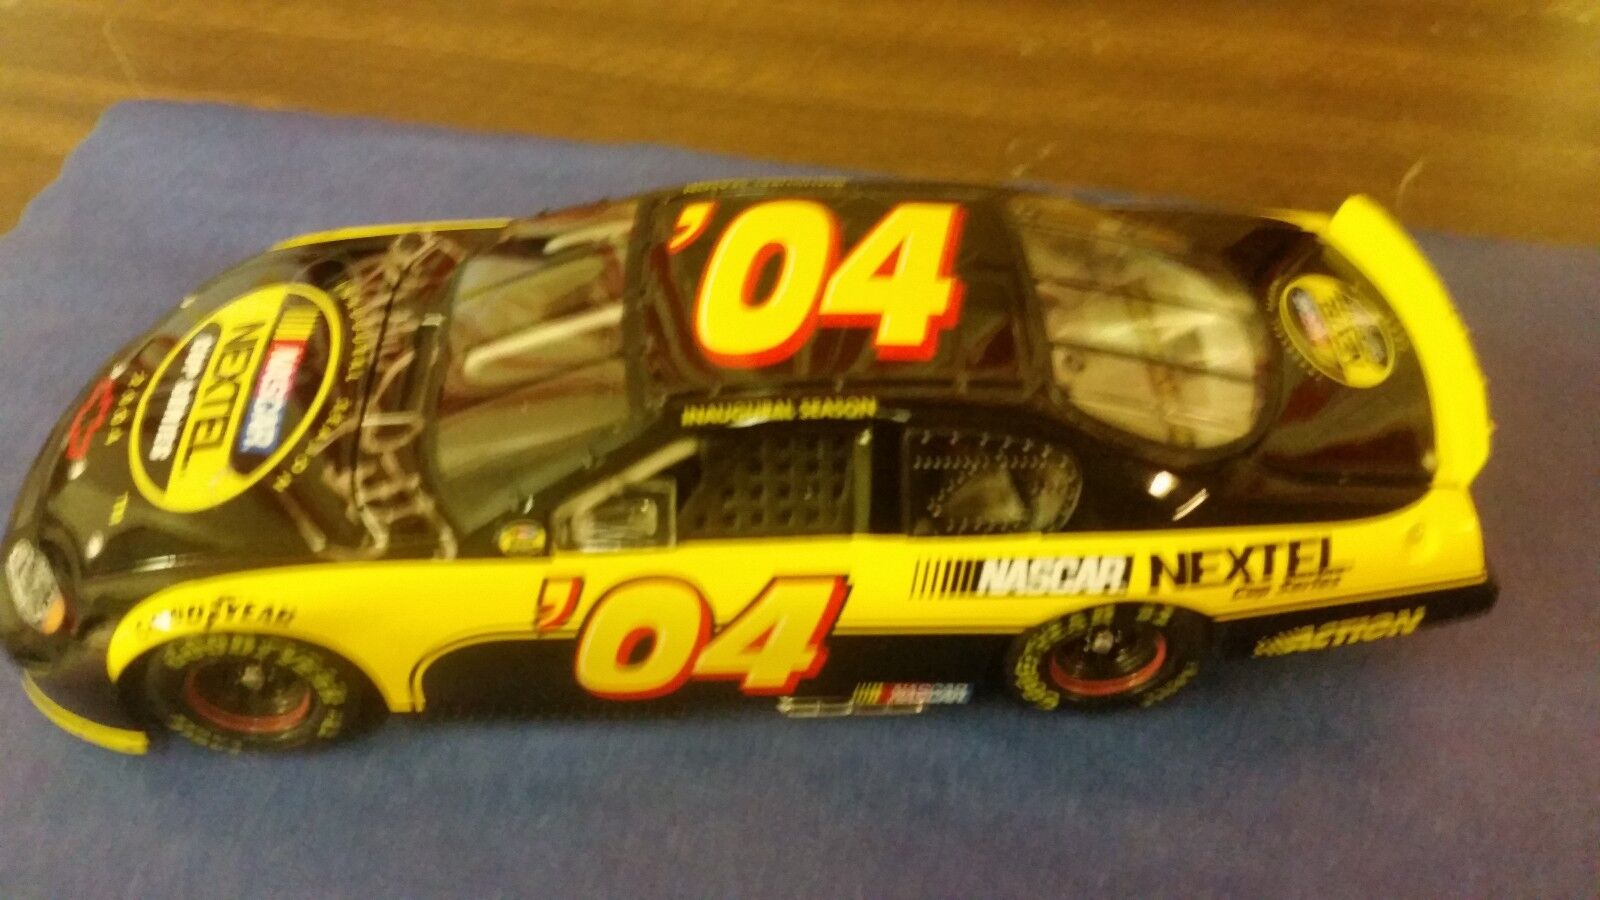 RICHARD PETTY 2004 INAUGURAL SEASON METAL DIE CAST NASCAR NEXTEL AUTOGRAPH